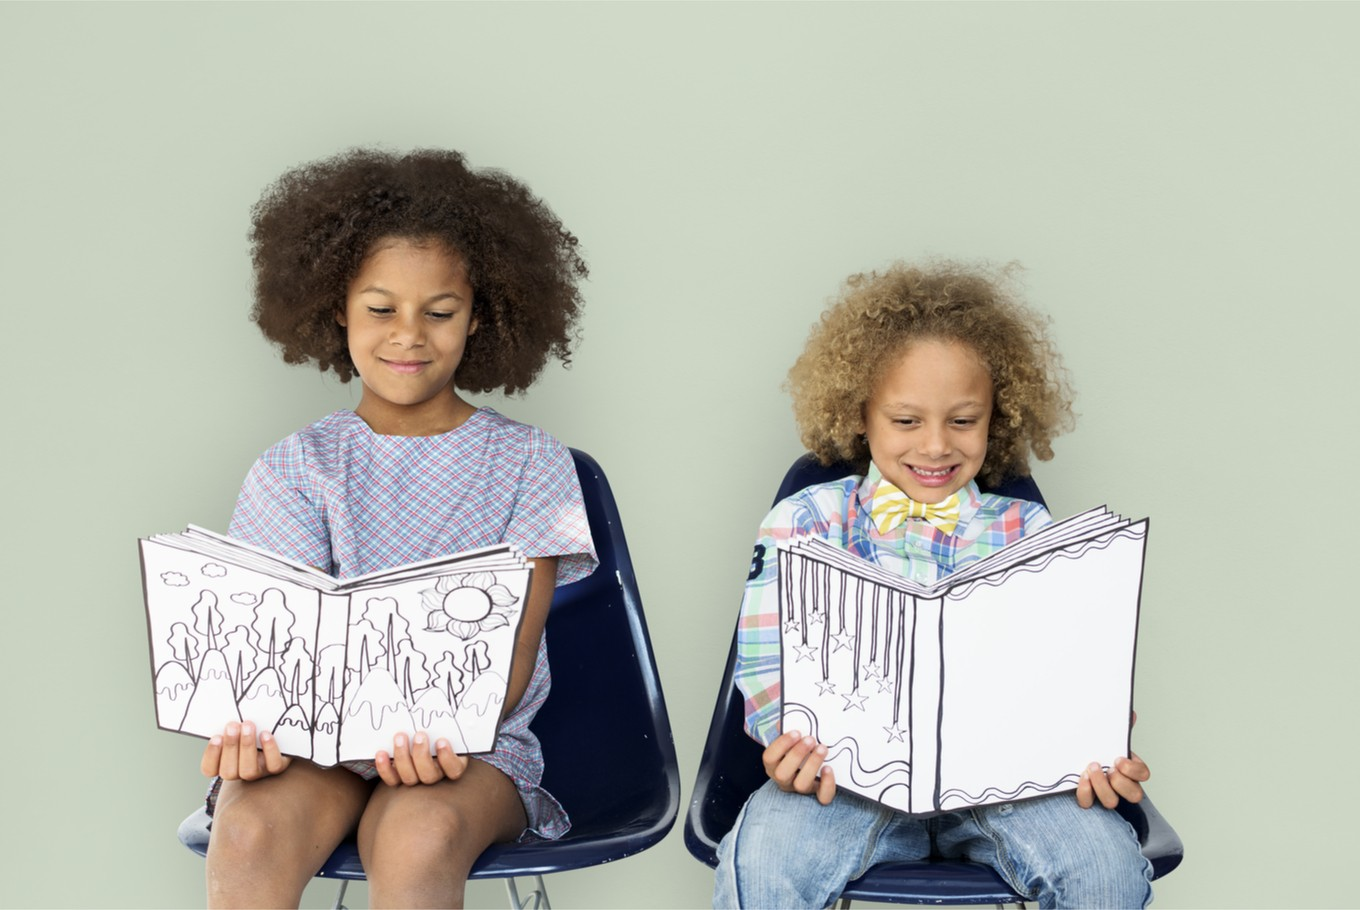 Study: Nearly 60 percent of children like reading for fun